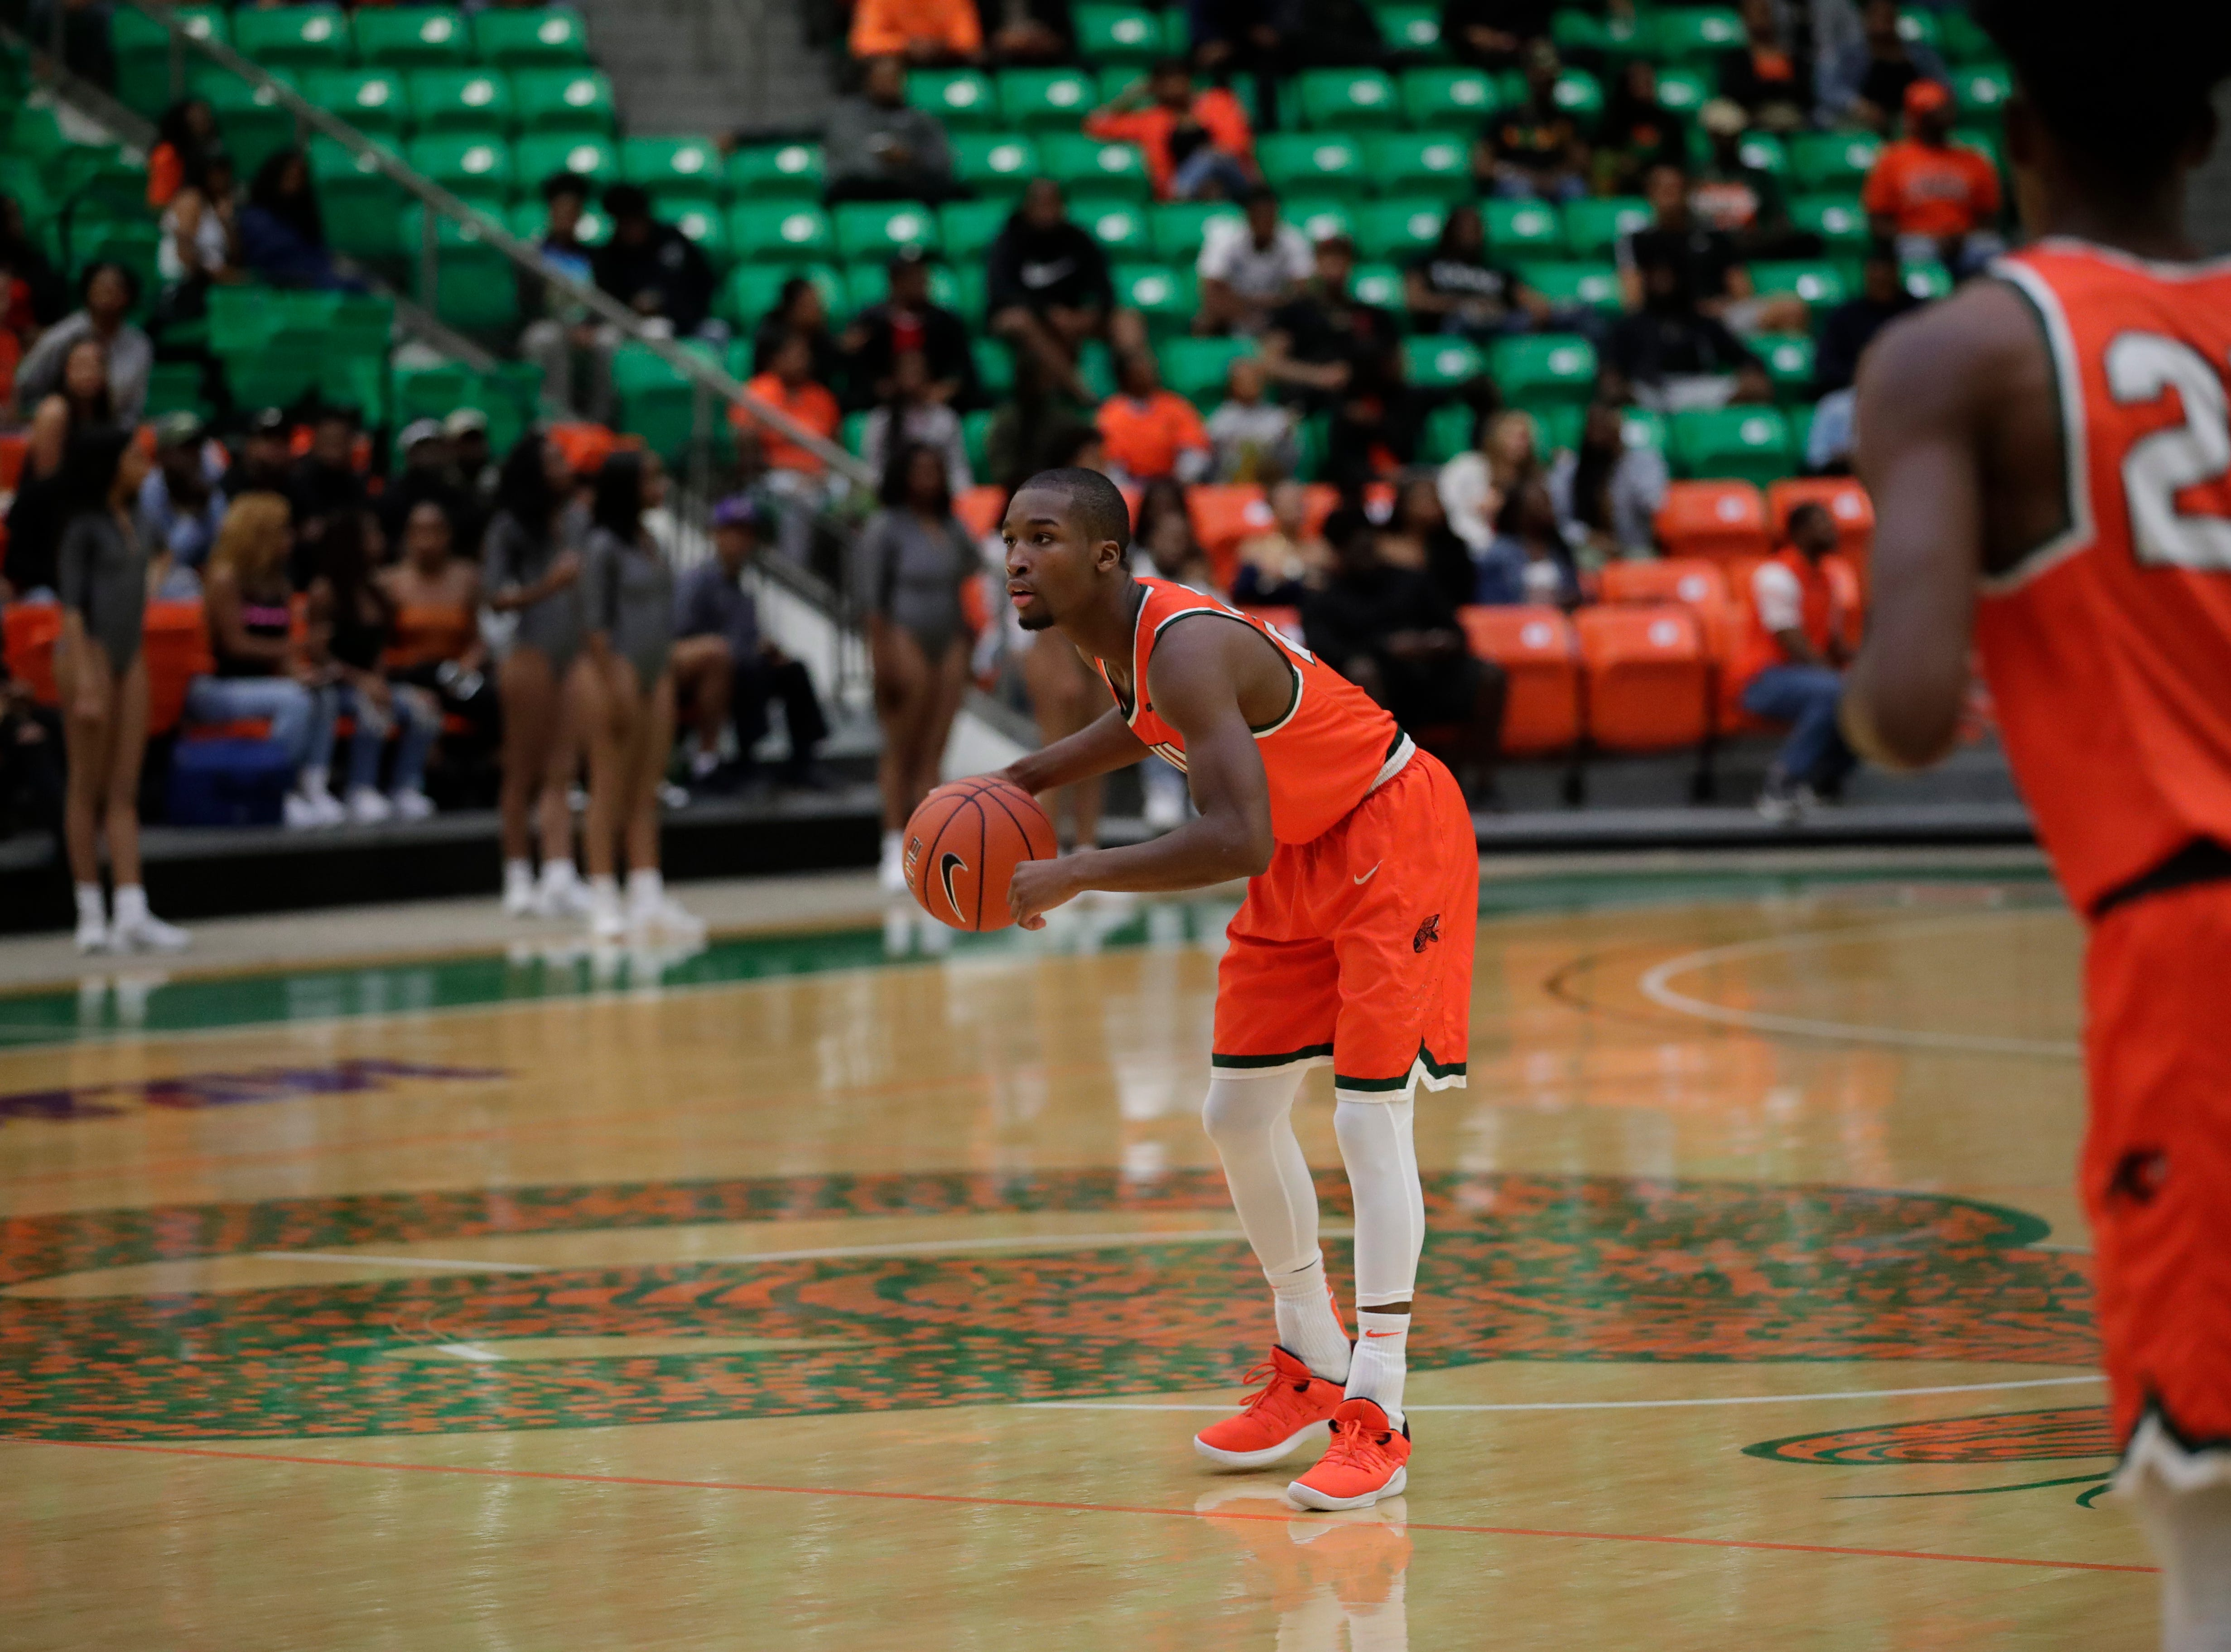 Florida A&M Rattlers guard Justin Ravenel (21) waits to set up a play during a game between FAMU and North Carolina Central at the Alfred Lawson Jr. Multipurpose Center Monday, Feb. 4, 2019.